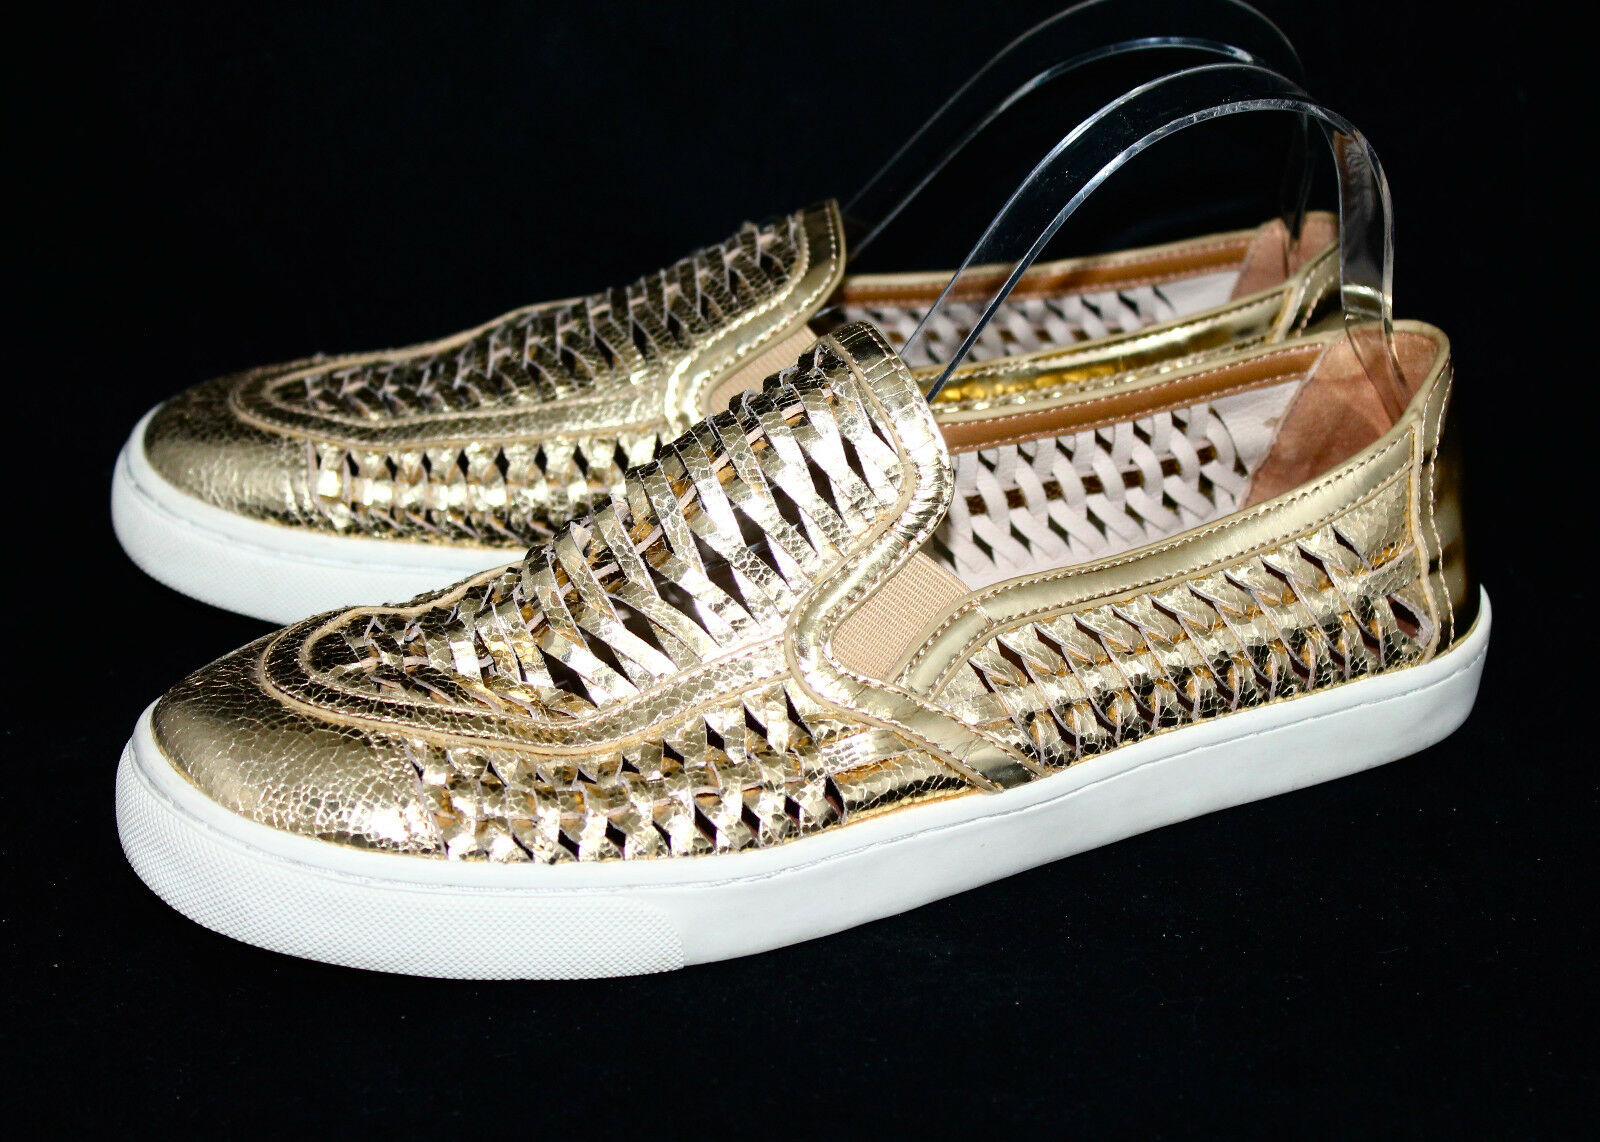 TORY BURCH Wo's 10.5M Metallic gold Woven Leather Huarache Slip Ons Loafer